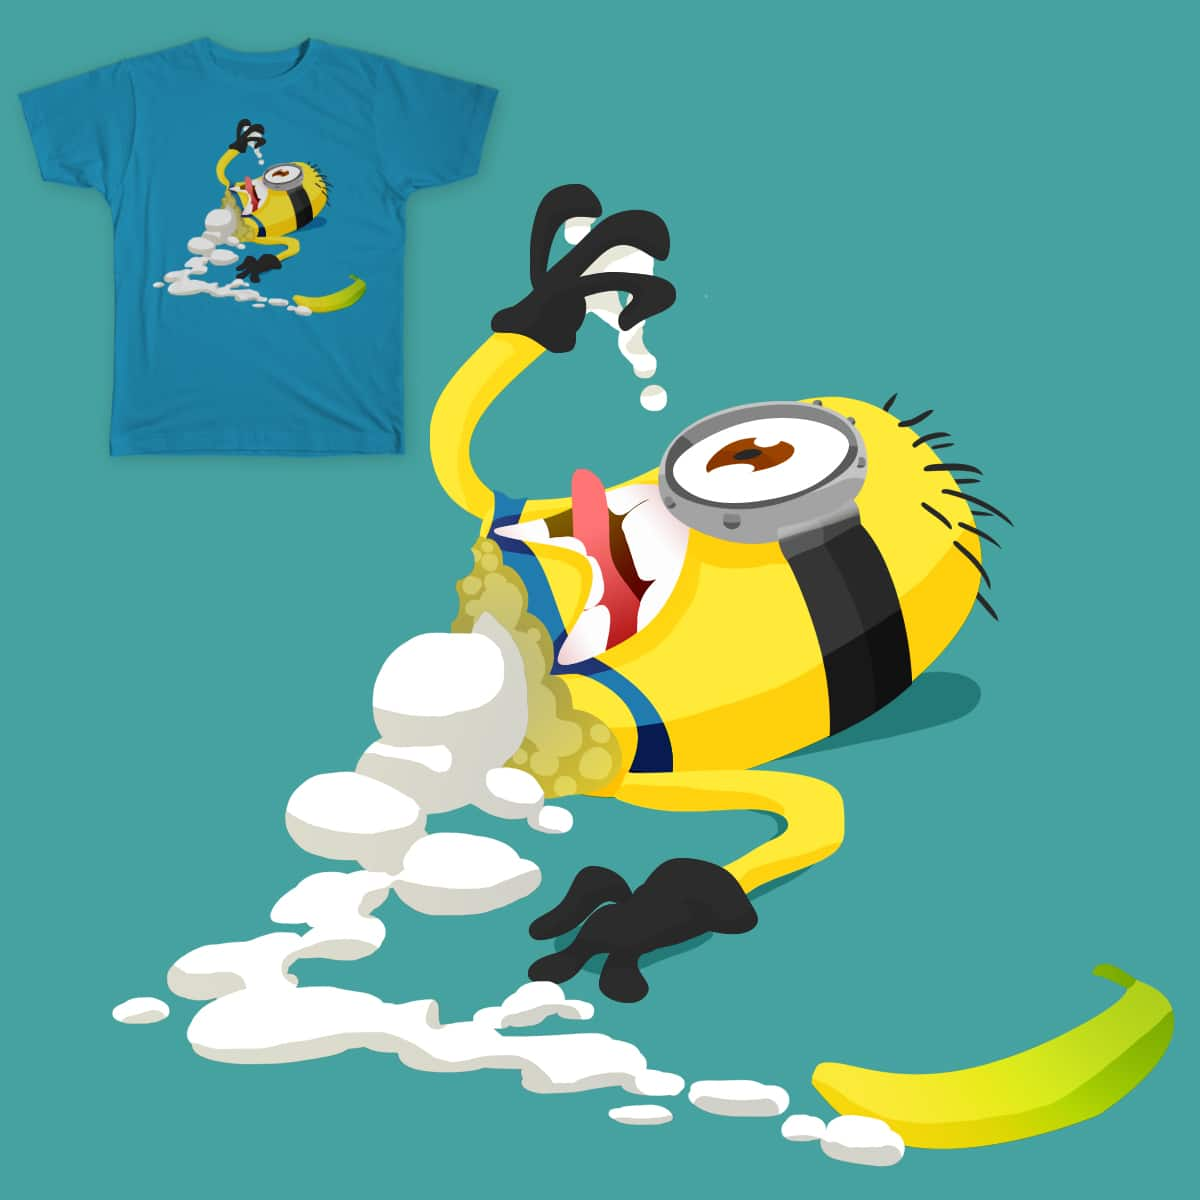 Despicable Creamy by CactusDiapers on Threadless